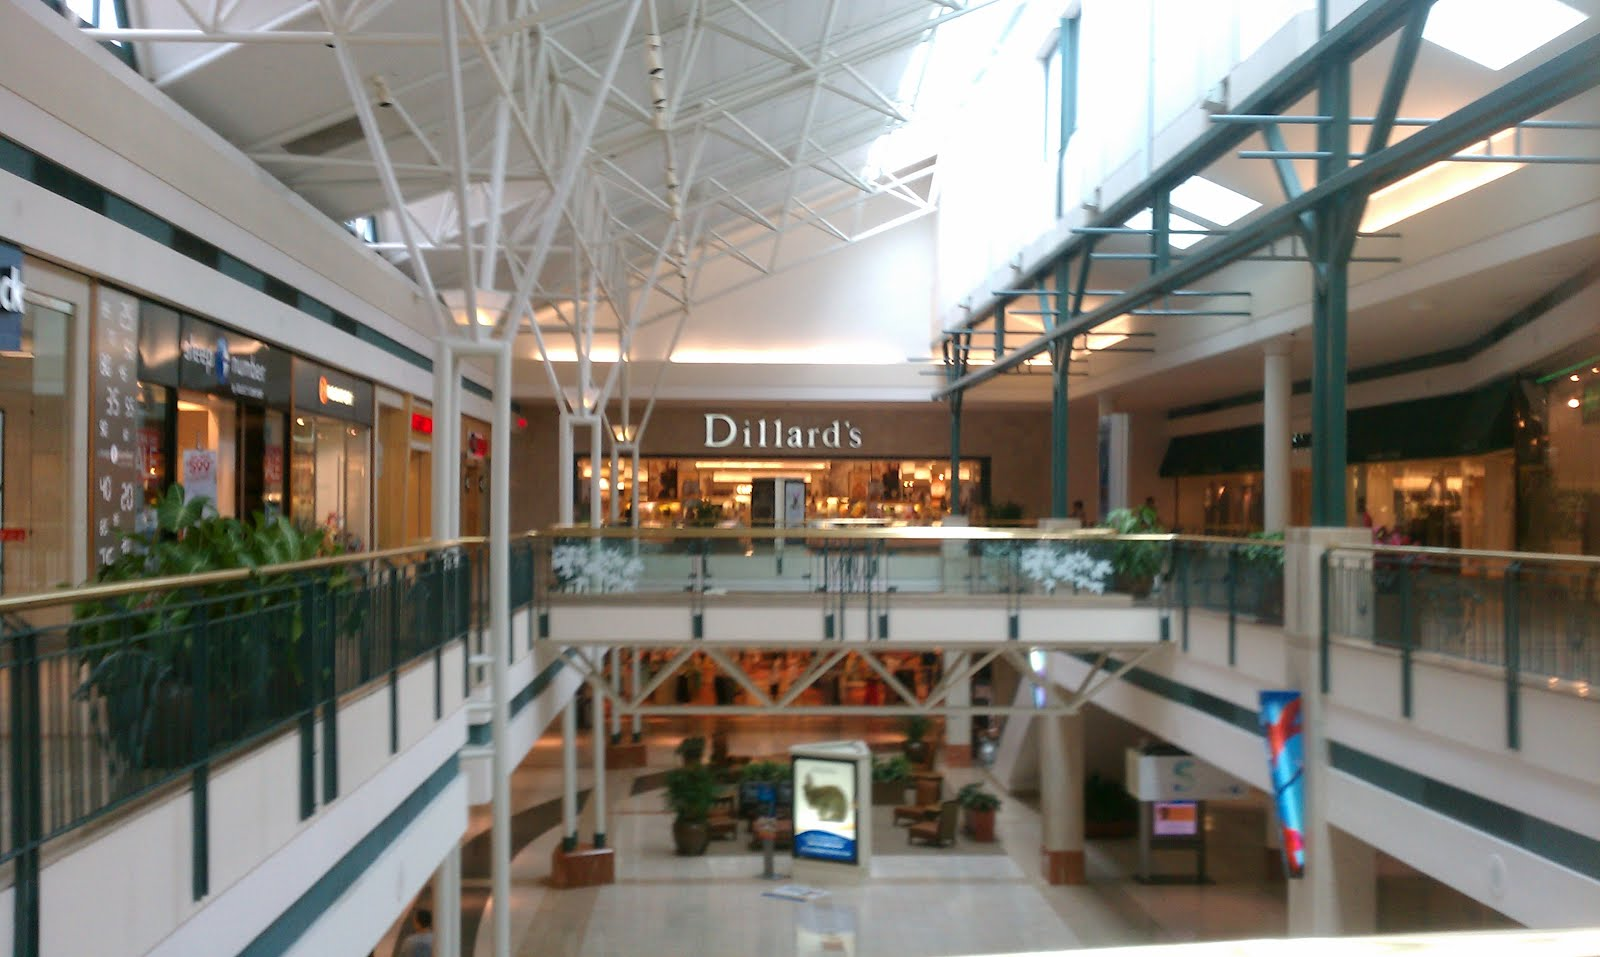 Enjoy excellent shopping in the Grand Rapids/Kentwood area in Michigan at retailers that include Macy's, JCPenney, and Apple.